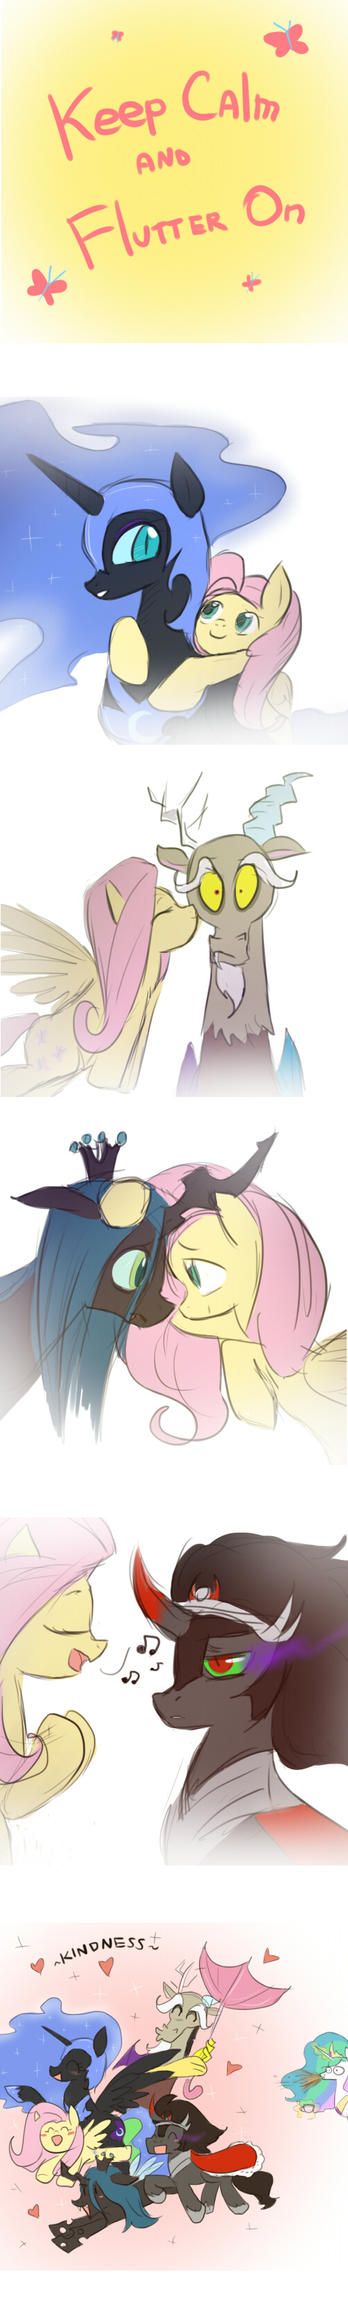 MLP: Keep Calm and Flutter On by keterok